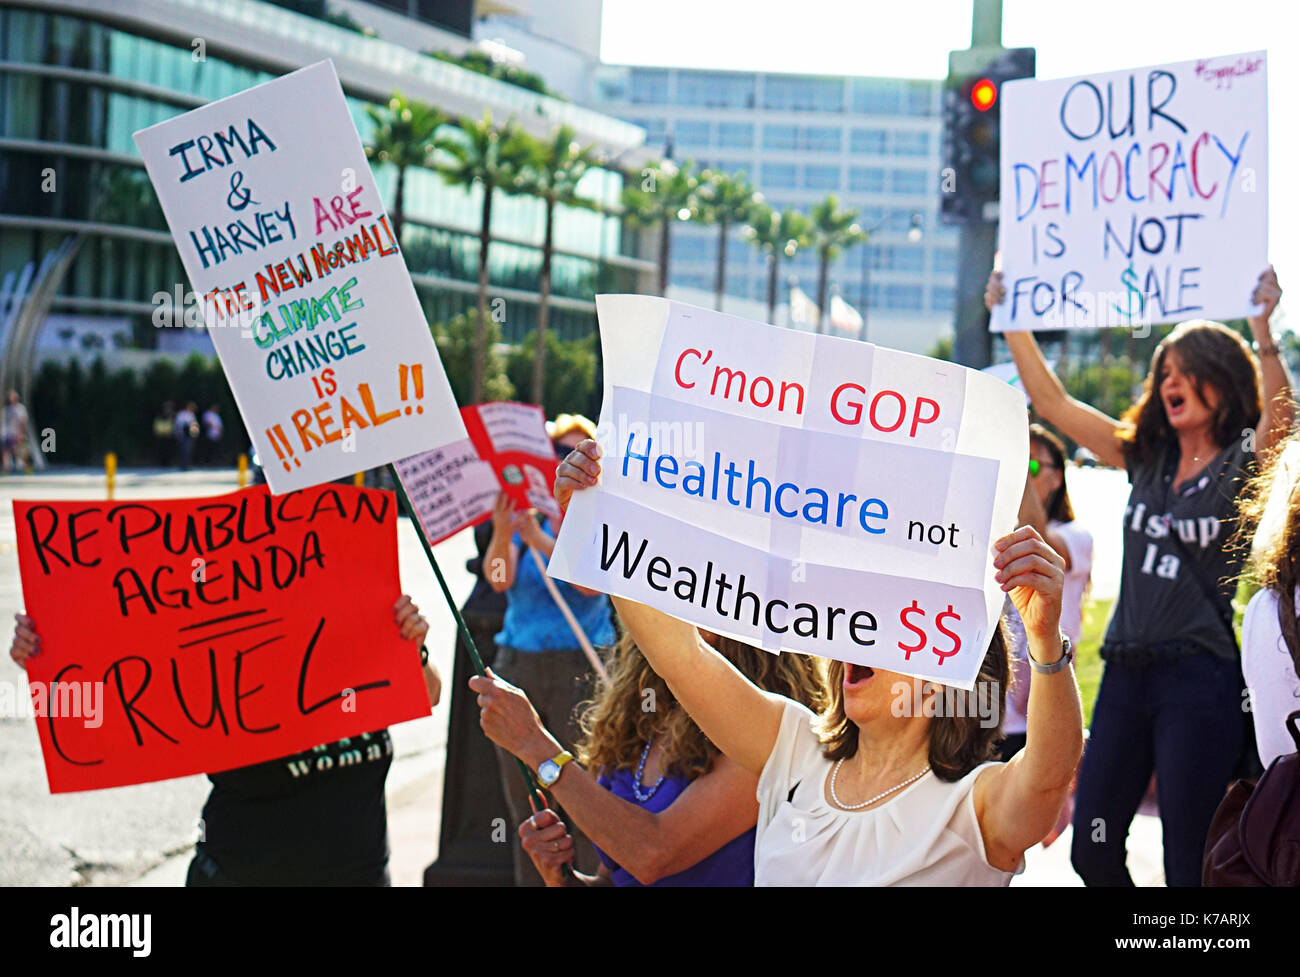 Beverly hills usa 14th sep 2017 trn voter registration beverly hills usa 14th sep 2017 trn voter registration education fundraiser protester hold signs demonstrating their constitutional right to protest sciox Choice Image